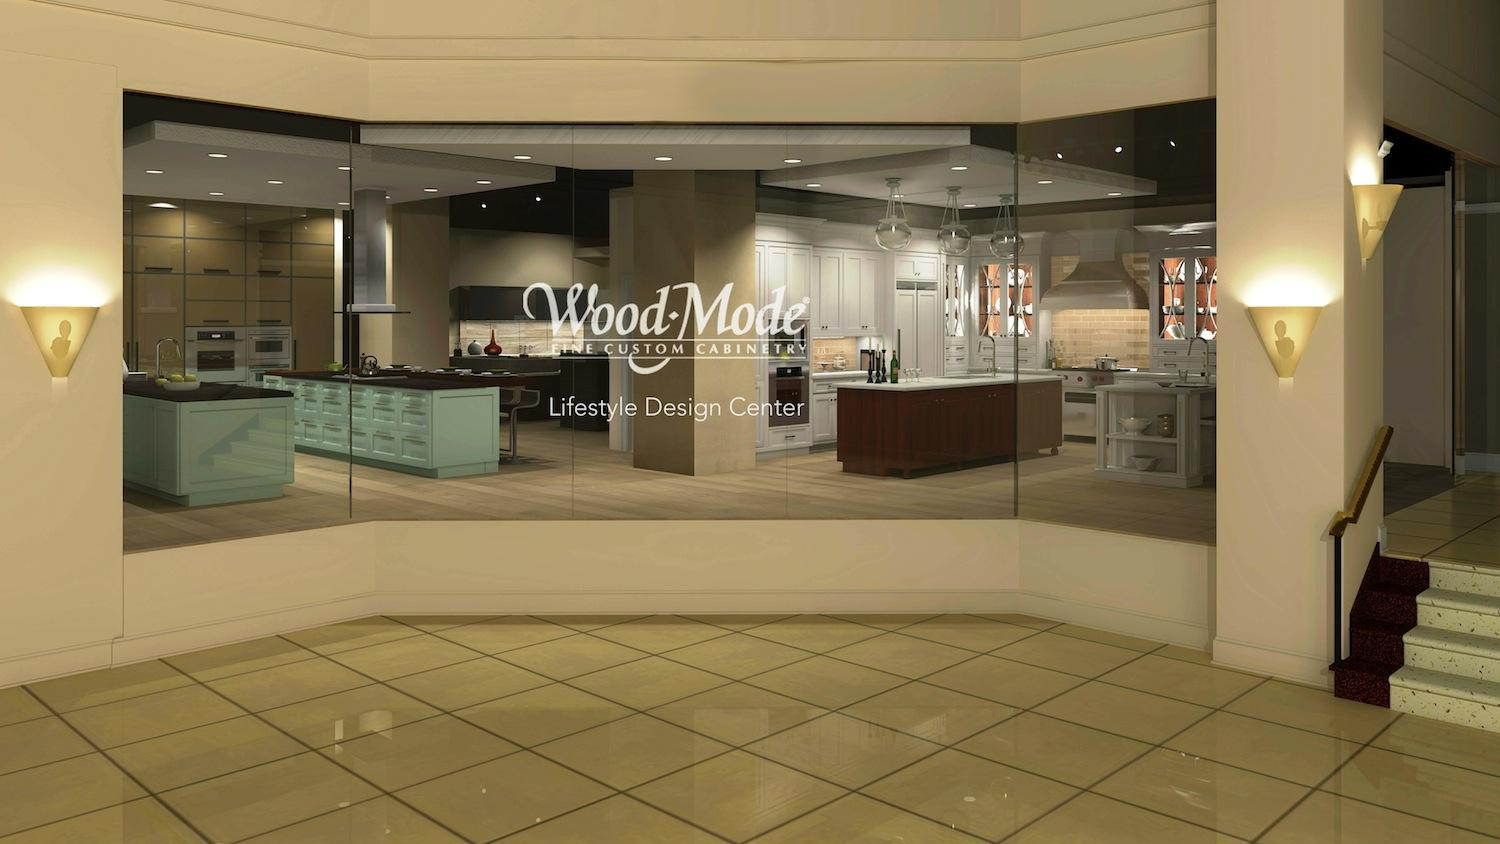 Wood Mode Lifestyle Design Center To Open In Chicago